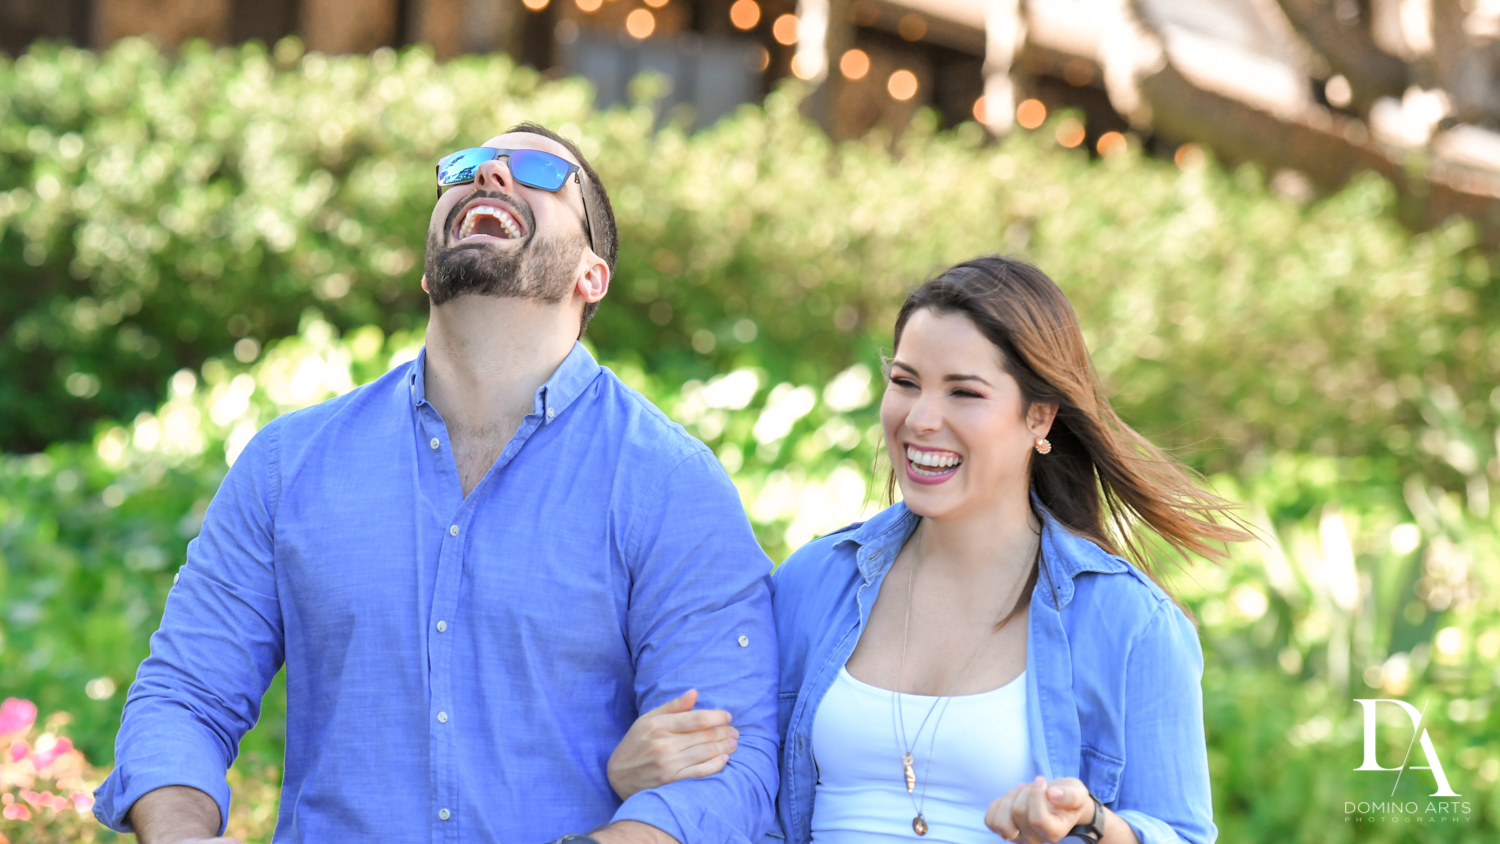 happy couple at Urban baby Photo Session in Coral Gables by Domino Arts Photography